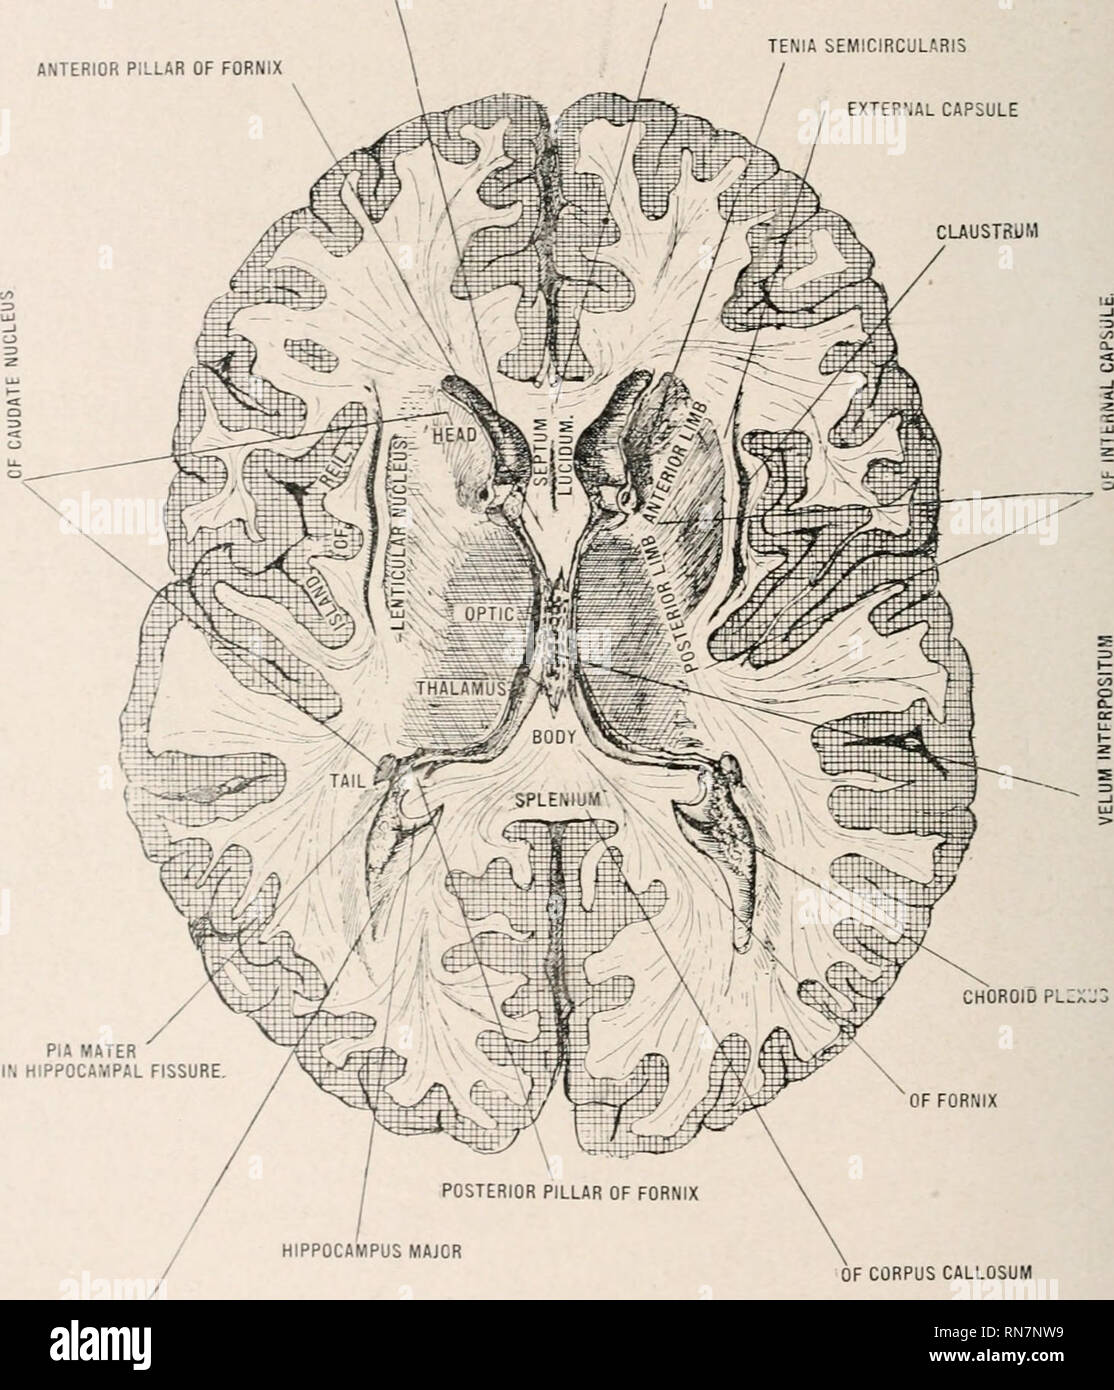 . Anatomy in a nutshell : a treatise on human anatomy in its relation to osteopathy. Human anatomy; Osteopathic medicine; Osteopathic Medicine; Anatomy. 366 ANATOMY IN A NUTSHELL. The arachnoid holds the tracts in position in the sulci. The dura mater covers the nerves and is continuous with the periosteum of the nasal fossa. The pia mater is continuous with the neurilemma. PLATE CLXXXYI. CuHNU OF LE.-T LATERAL VENTRICLE ANTERIOR PILLAR OF FORNIX ROSTRUM OF CORPUS CALLOSUM TENIA SEMICIRCULARIS EXTERNAL CAPSULE CLAUSTRUM. PIA MATER IN HIPPOCAMPAL FISSURE OF CORPUS CALLOSUM POSTERIOR CORNU OF LE Stock Photo